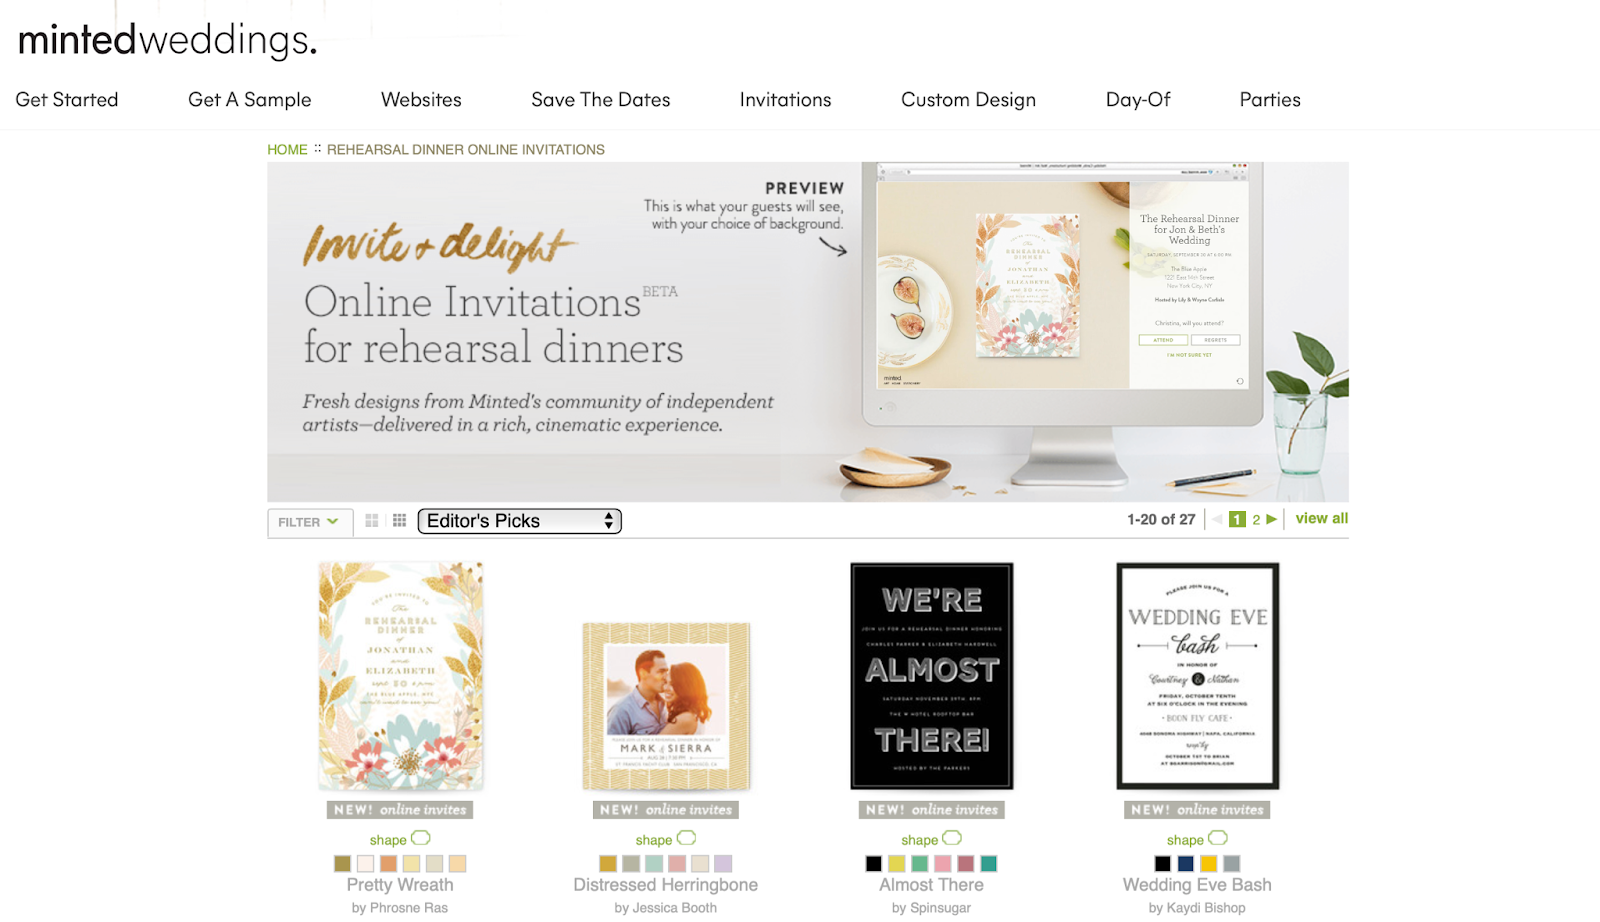 Photo of wedding oriented digital cards for rehearsal dinners and weddings from Minted